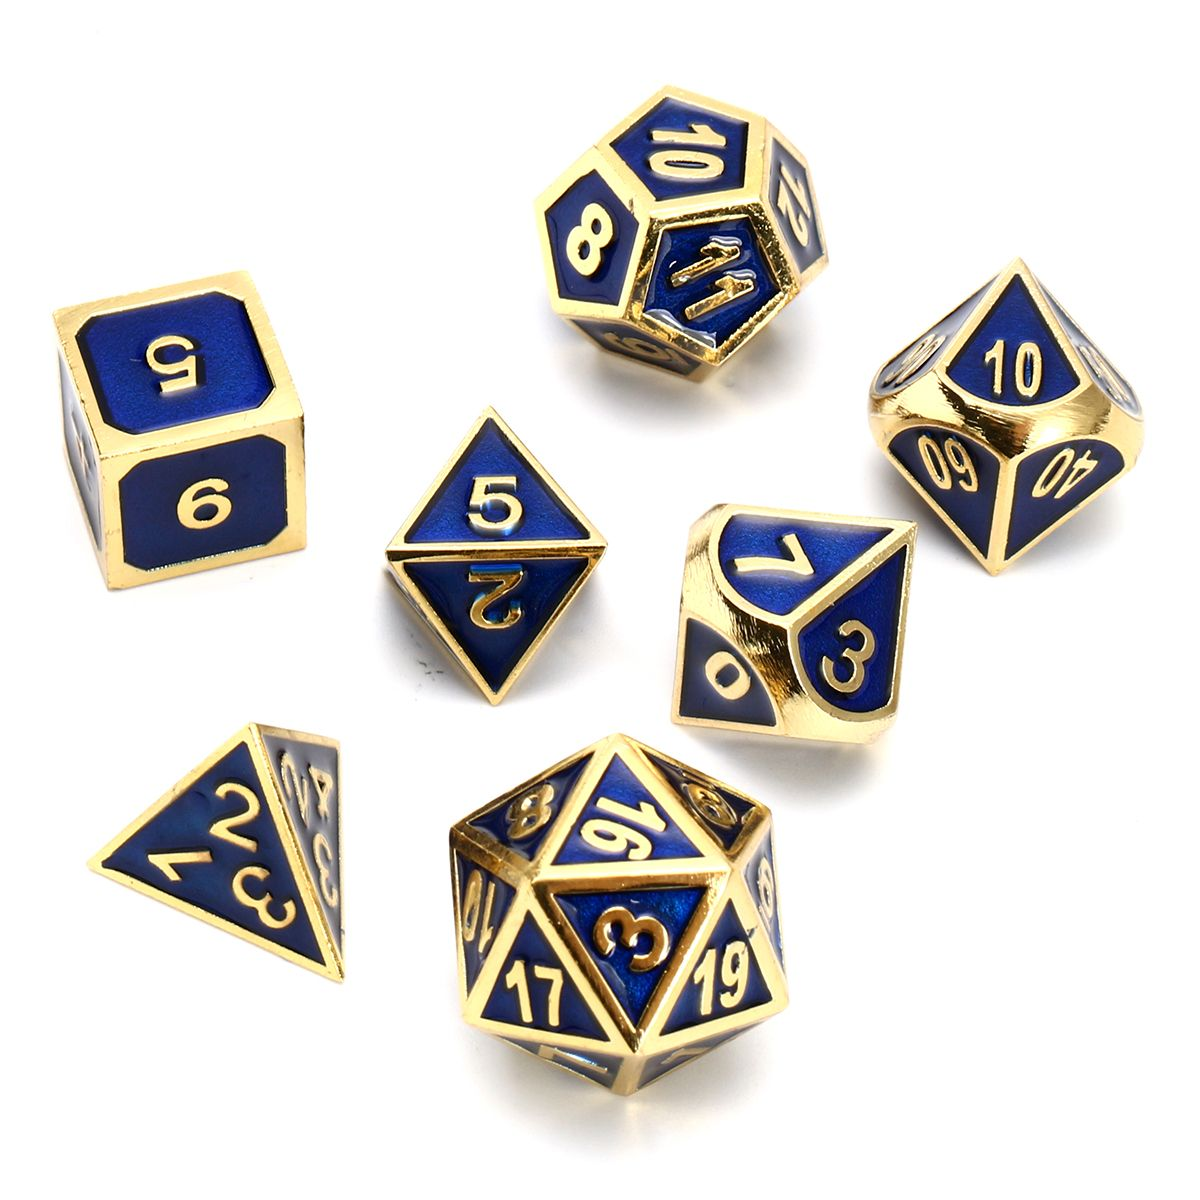 Wiz Dice Set of 8 Masterwork Precision Aluminum Polyhedrals with Laser-Etched Strongbox by Choose from 8 Anodized Colors Malachite